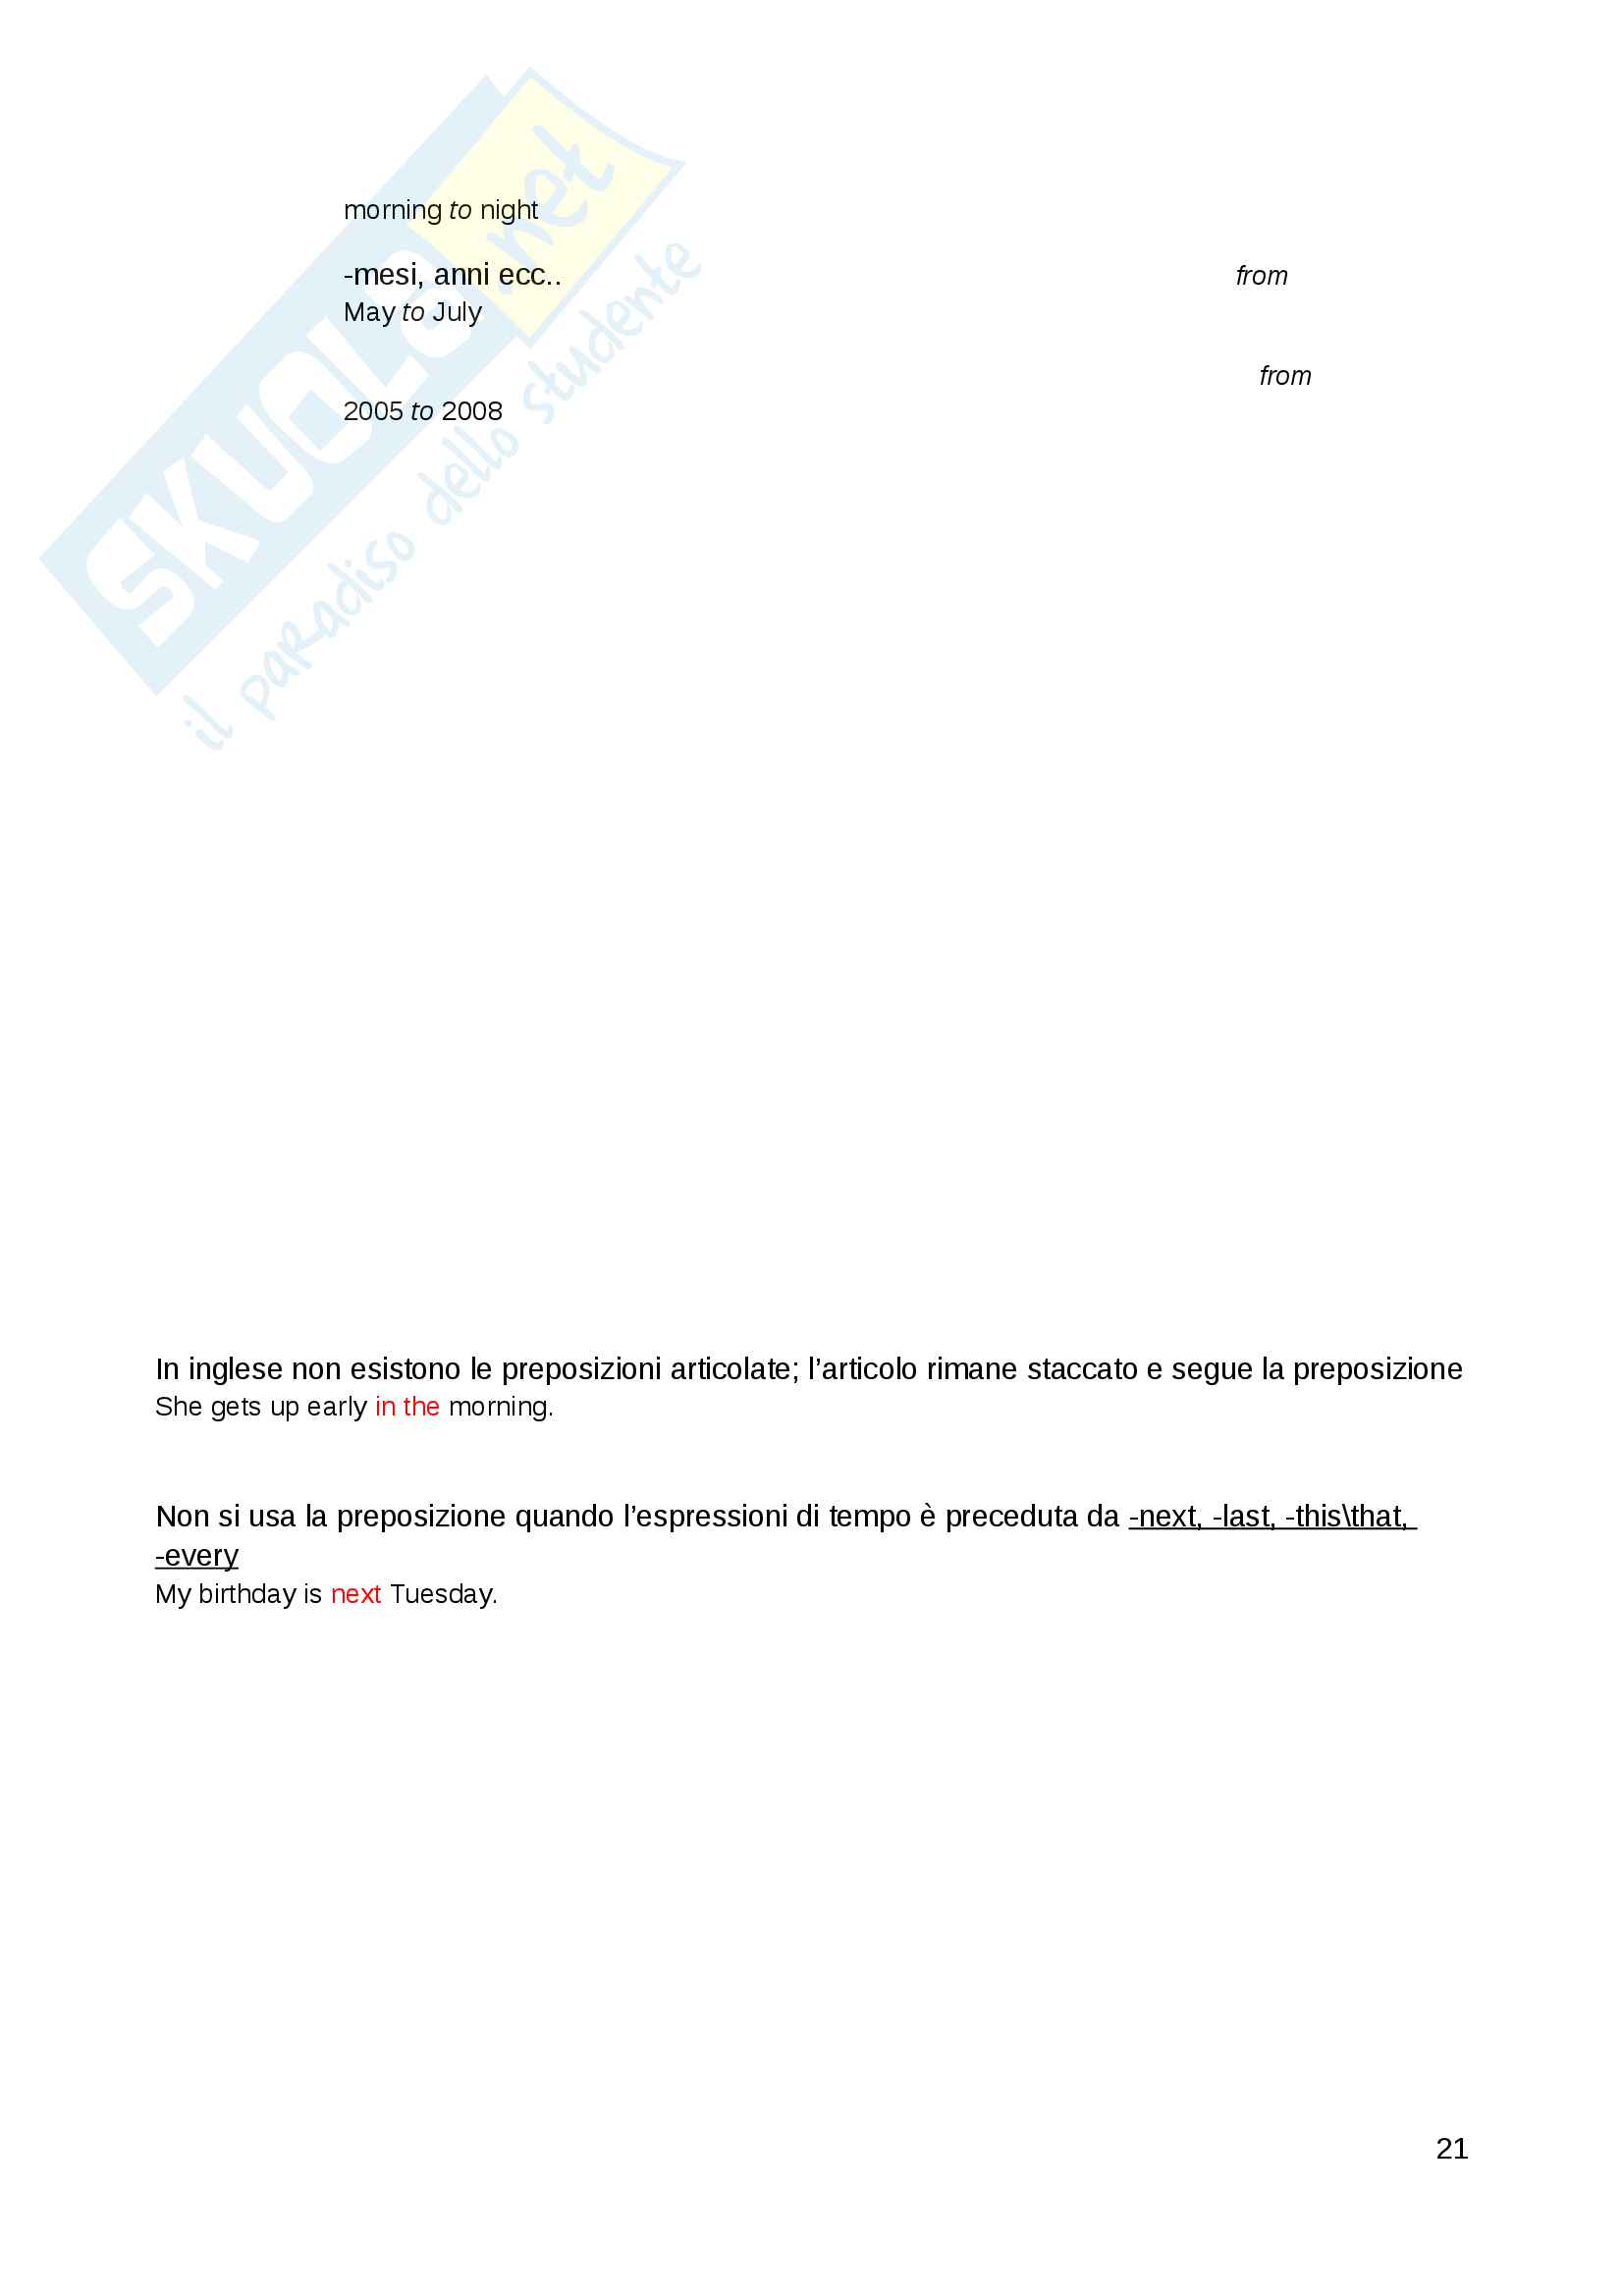 Grammatica Inglese Pag. 21